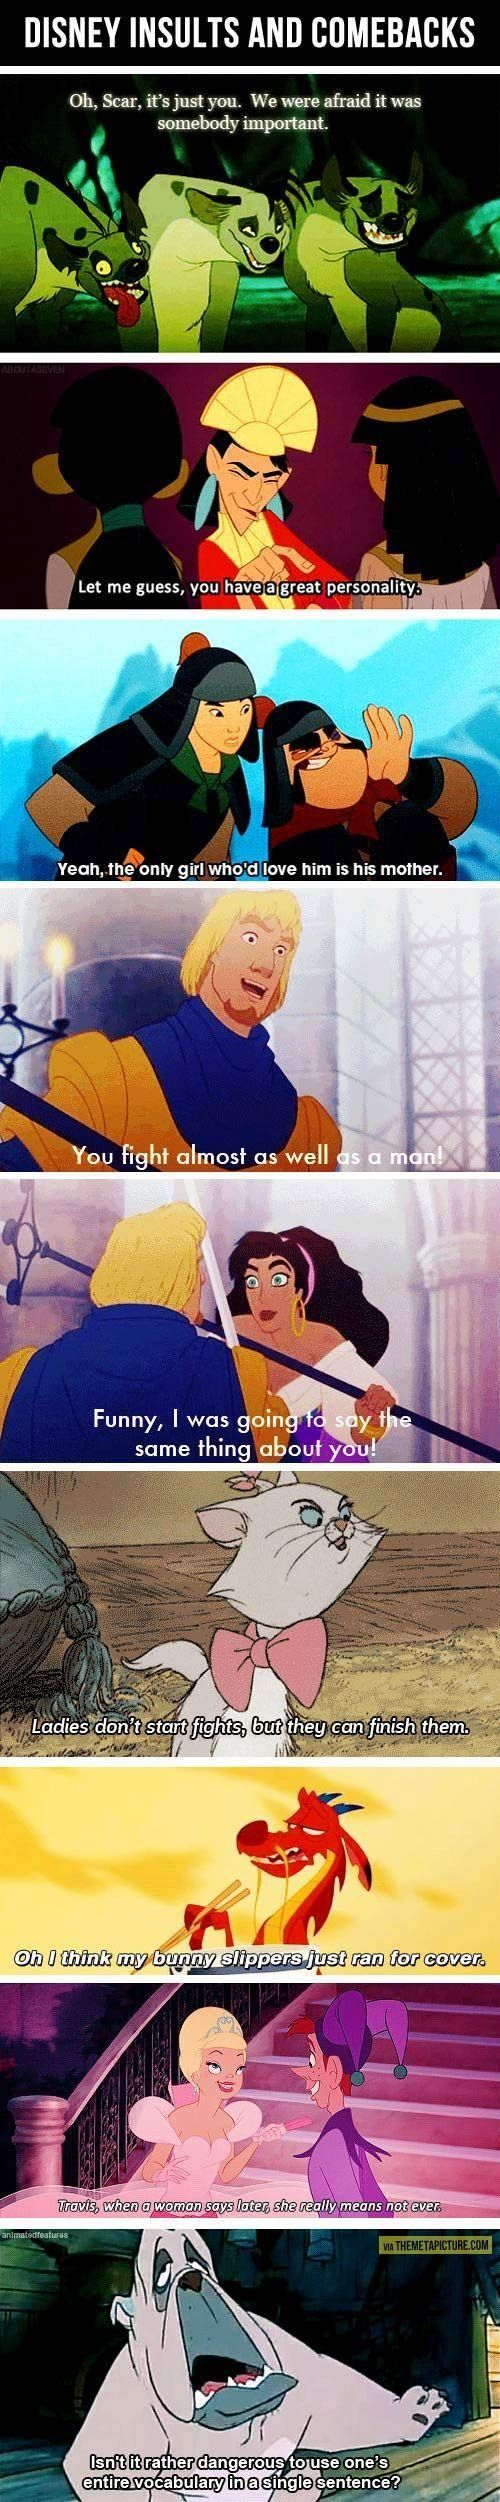 Best Disney Funny Moments Ideas On Pinterest Funny Disney - 26 times tumblr told the funniest disney jokes ever